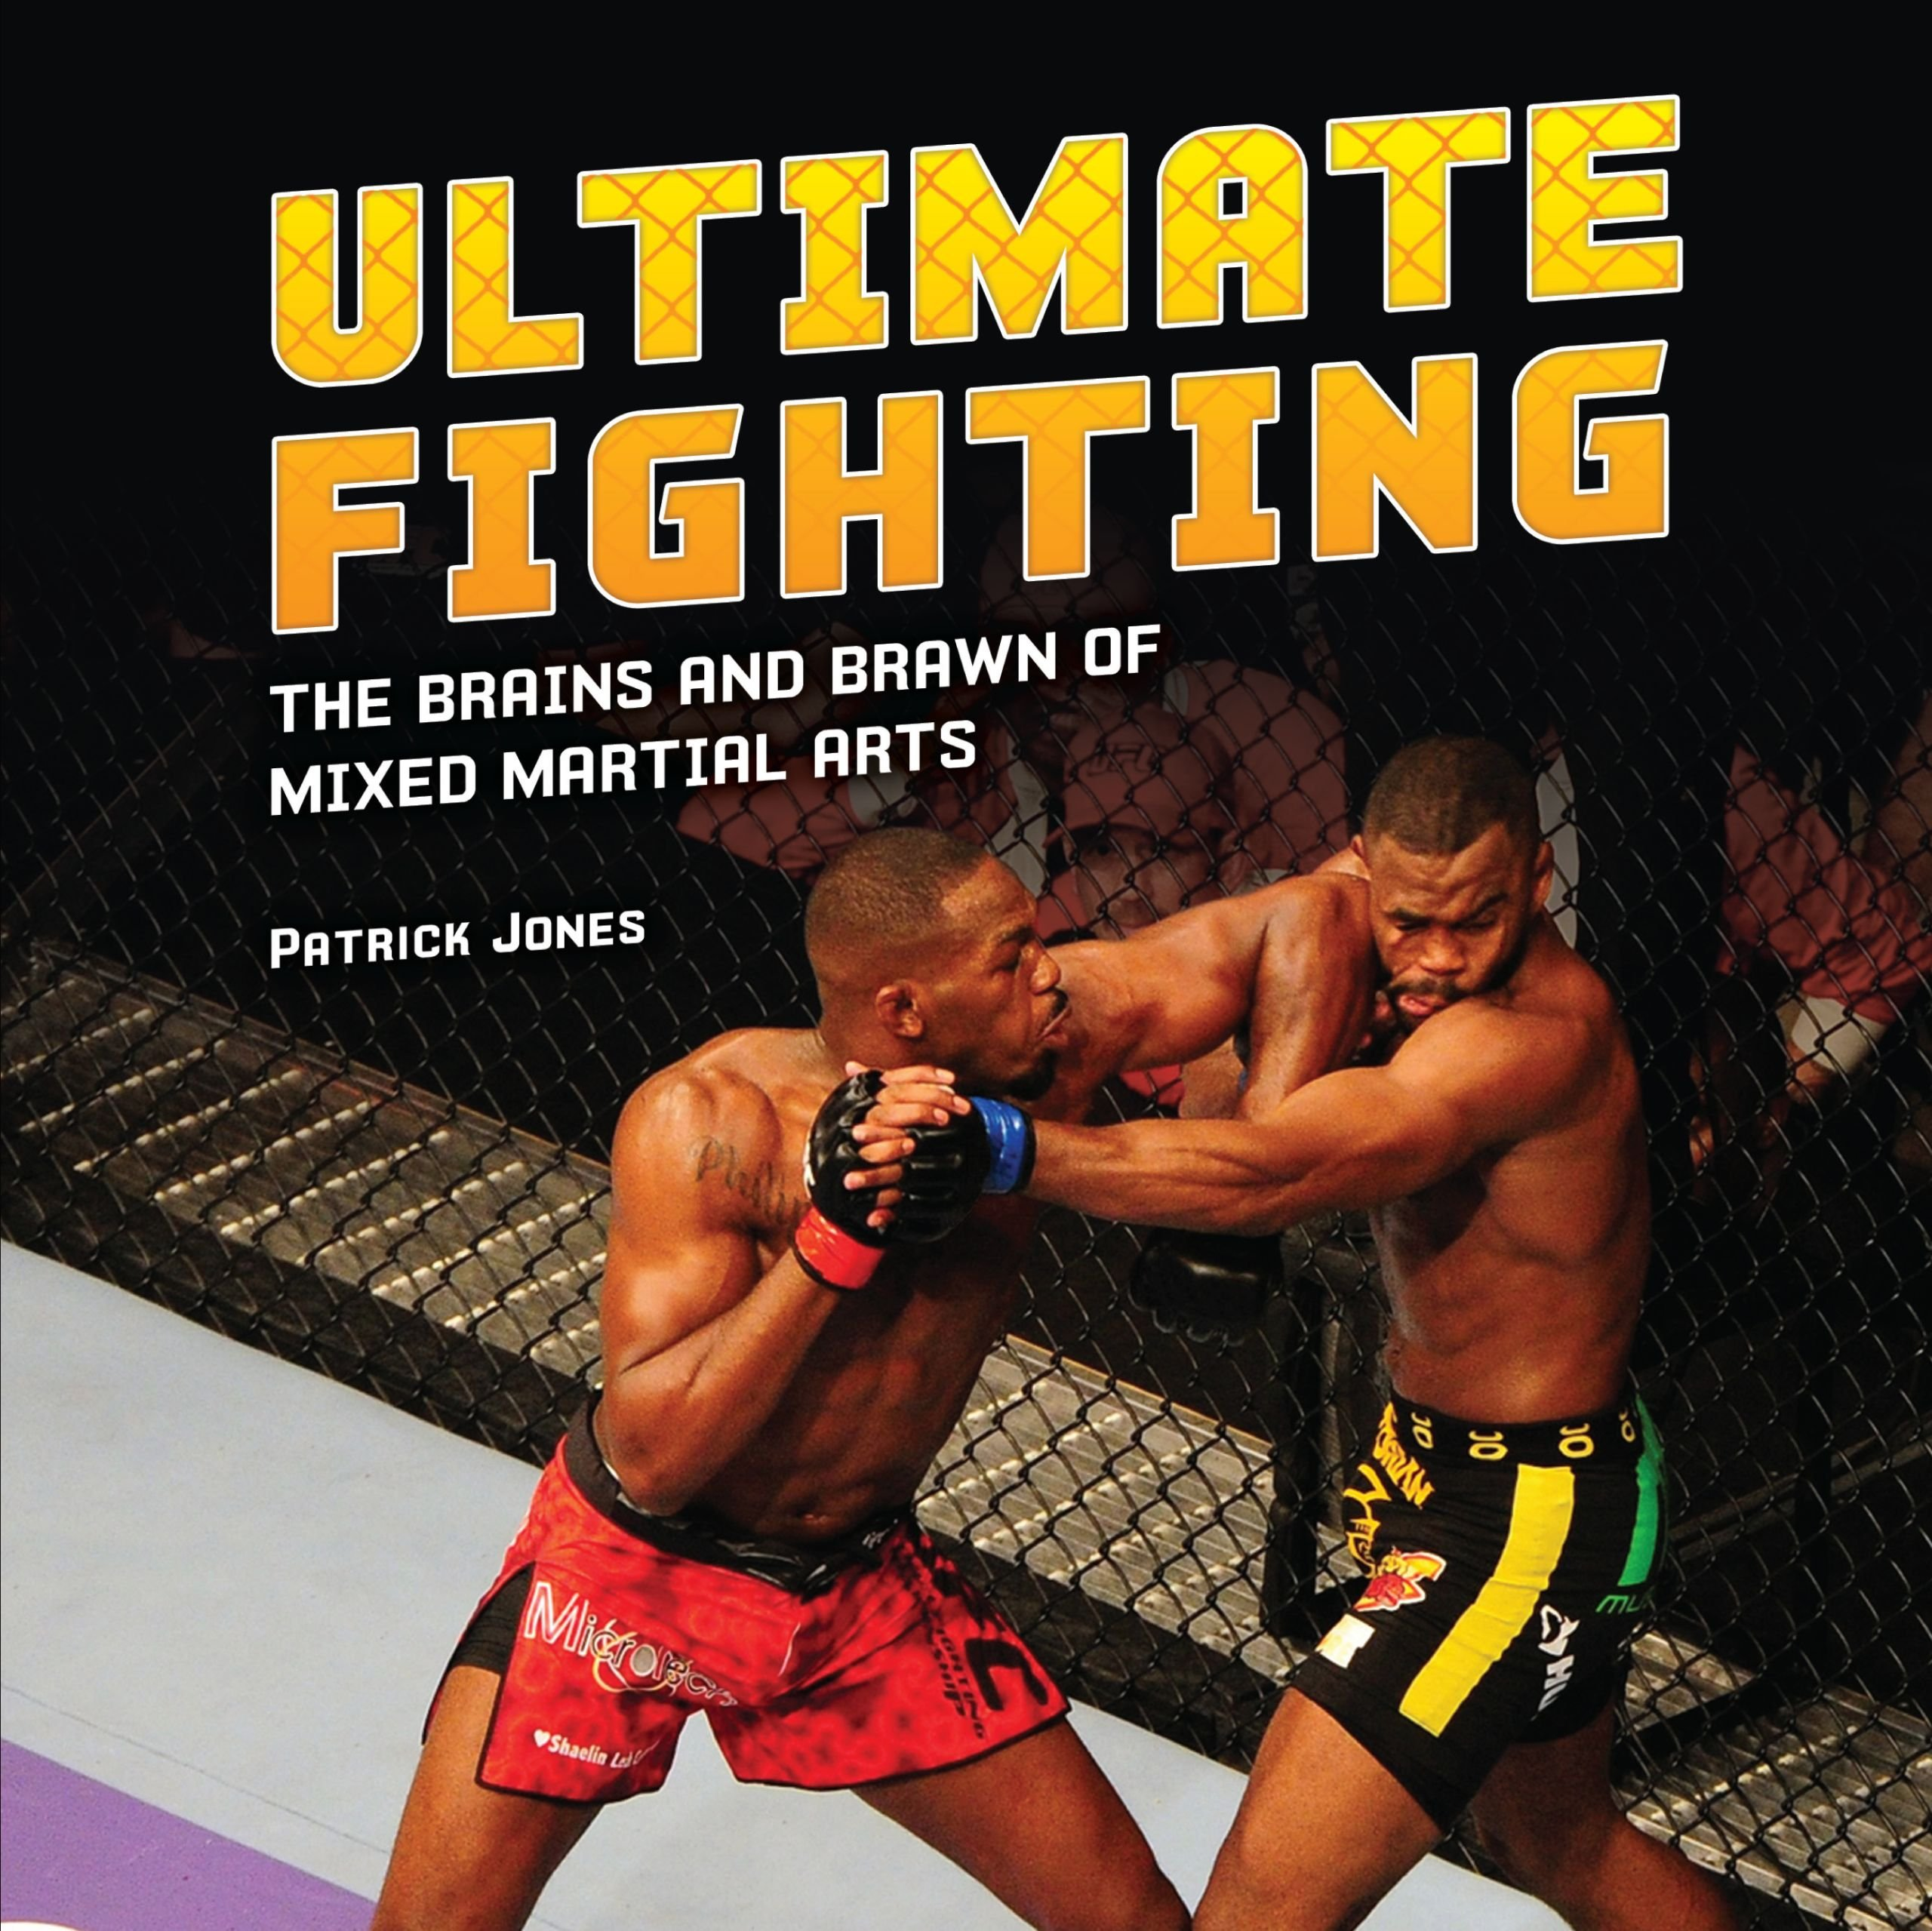 Ultimate Fighting: The Brains and Brawn of Mixed Martial Arts (Spectacular Sports)